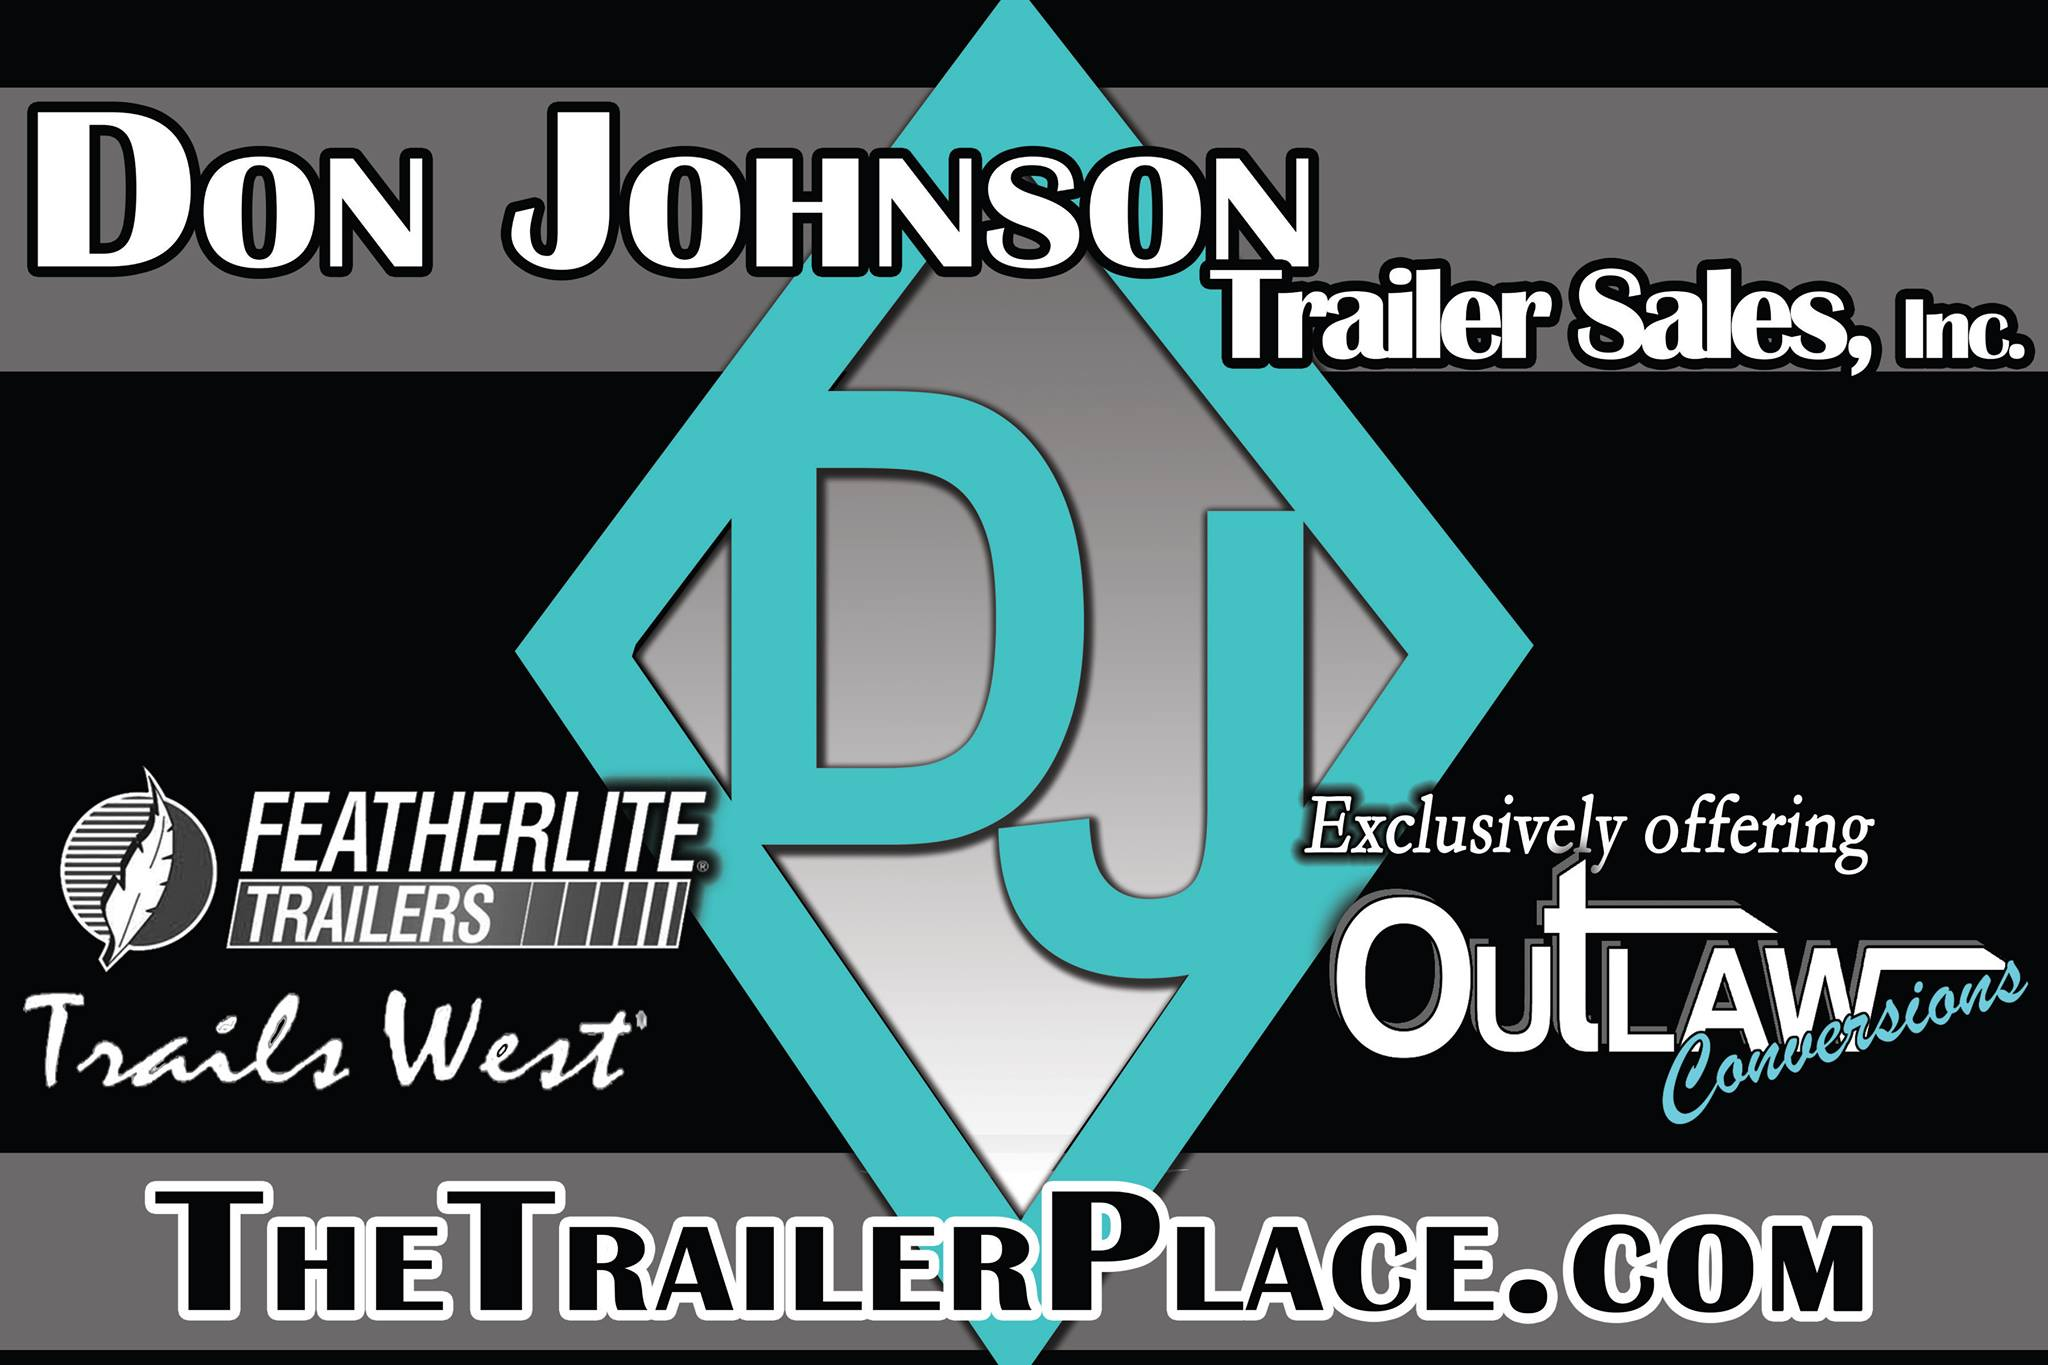 Don Johnson Trailer Sales, Inc.